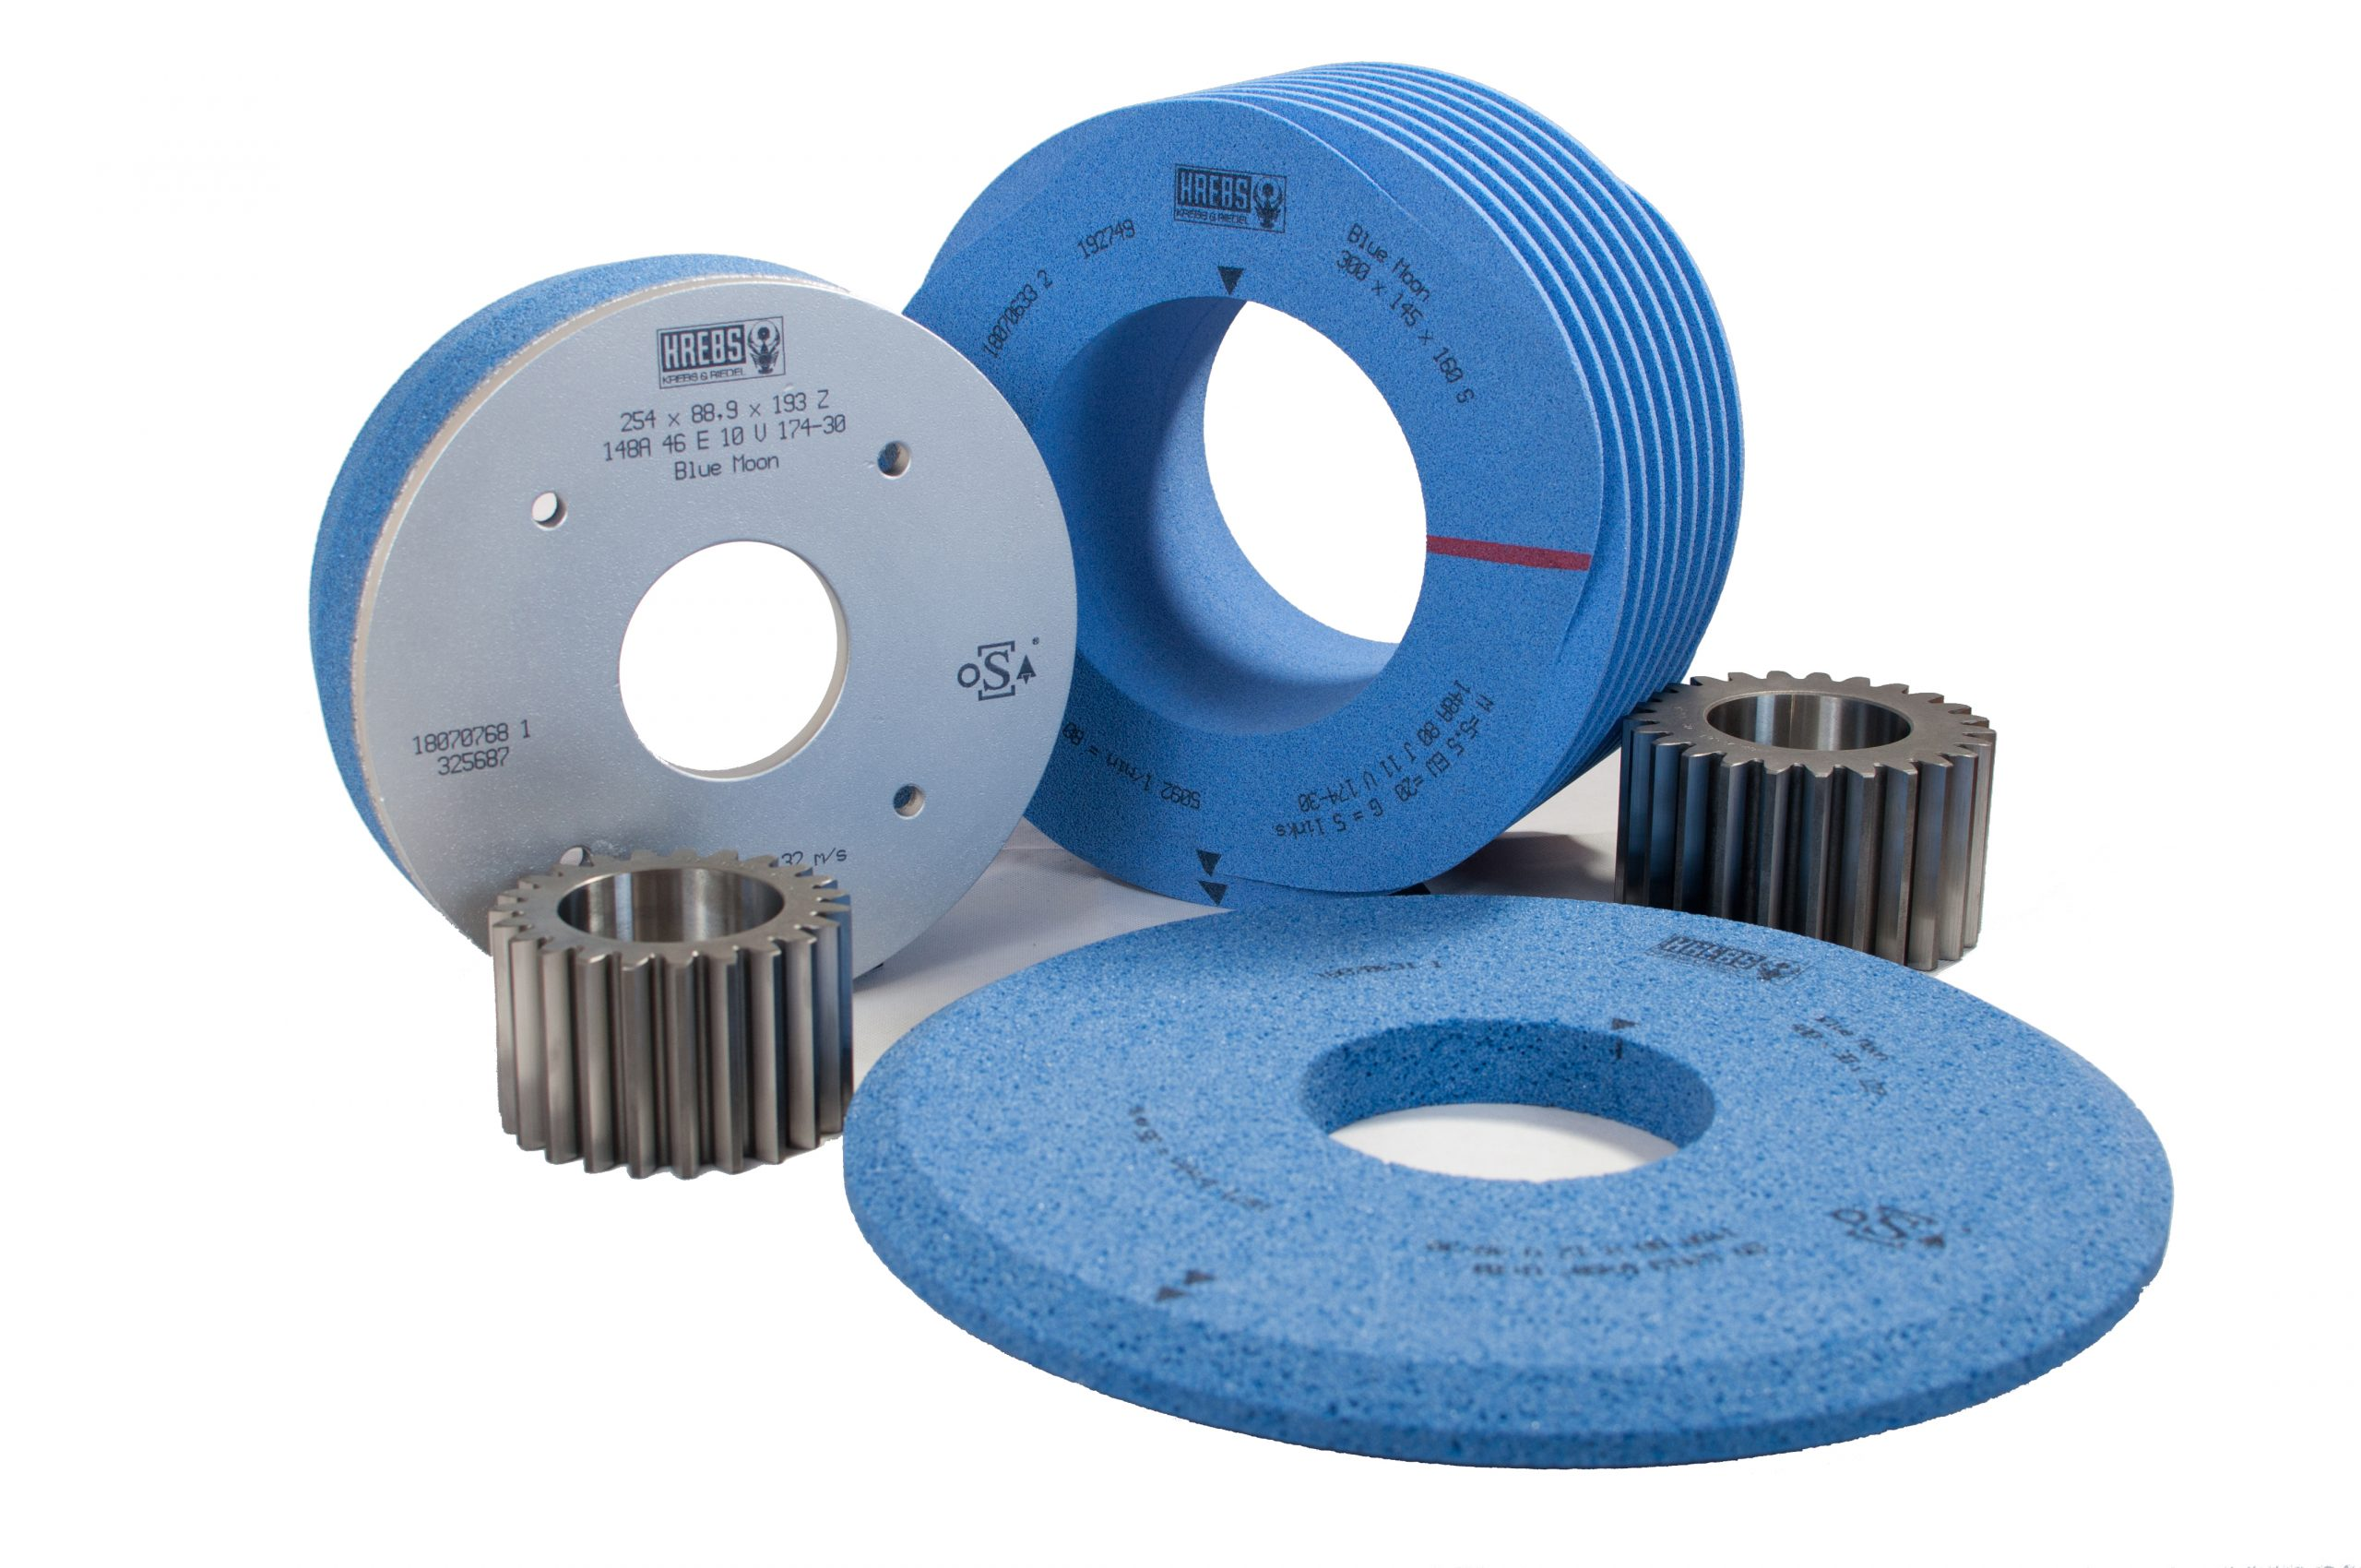 Blue Moon-TZ high-performance grinding wheels with precision-shaped trapezoid abrasive grain for maximum performance.